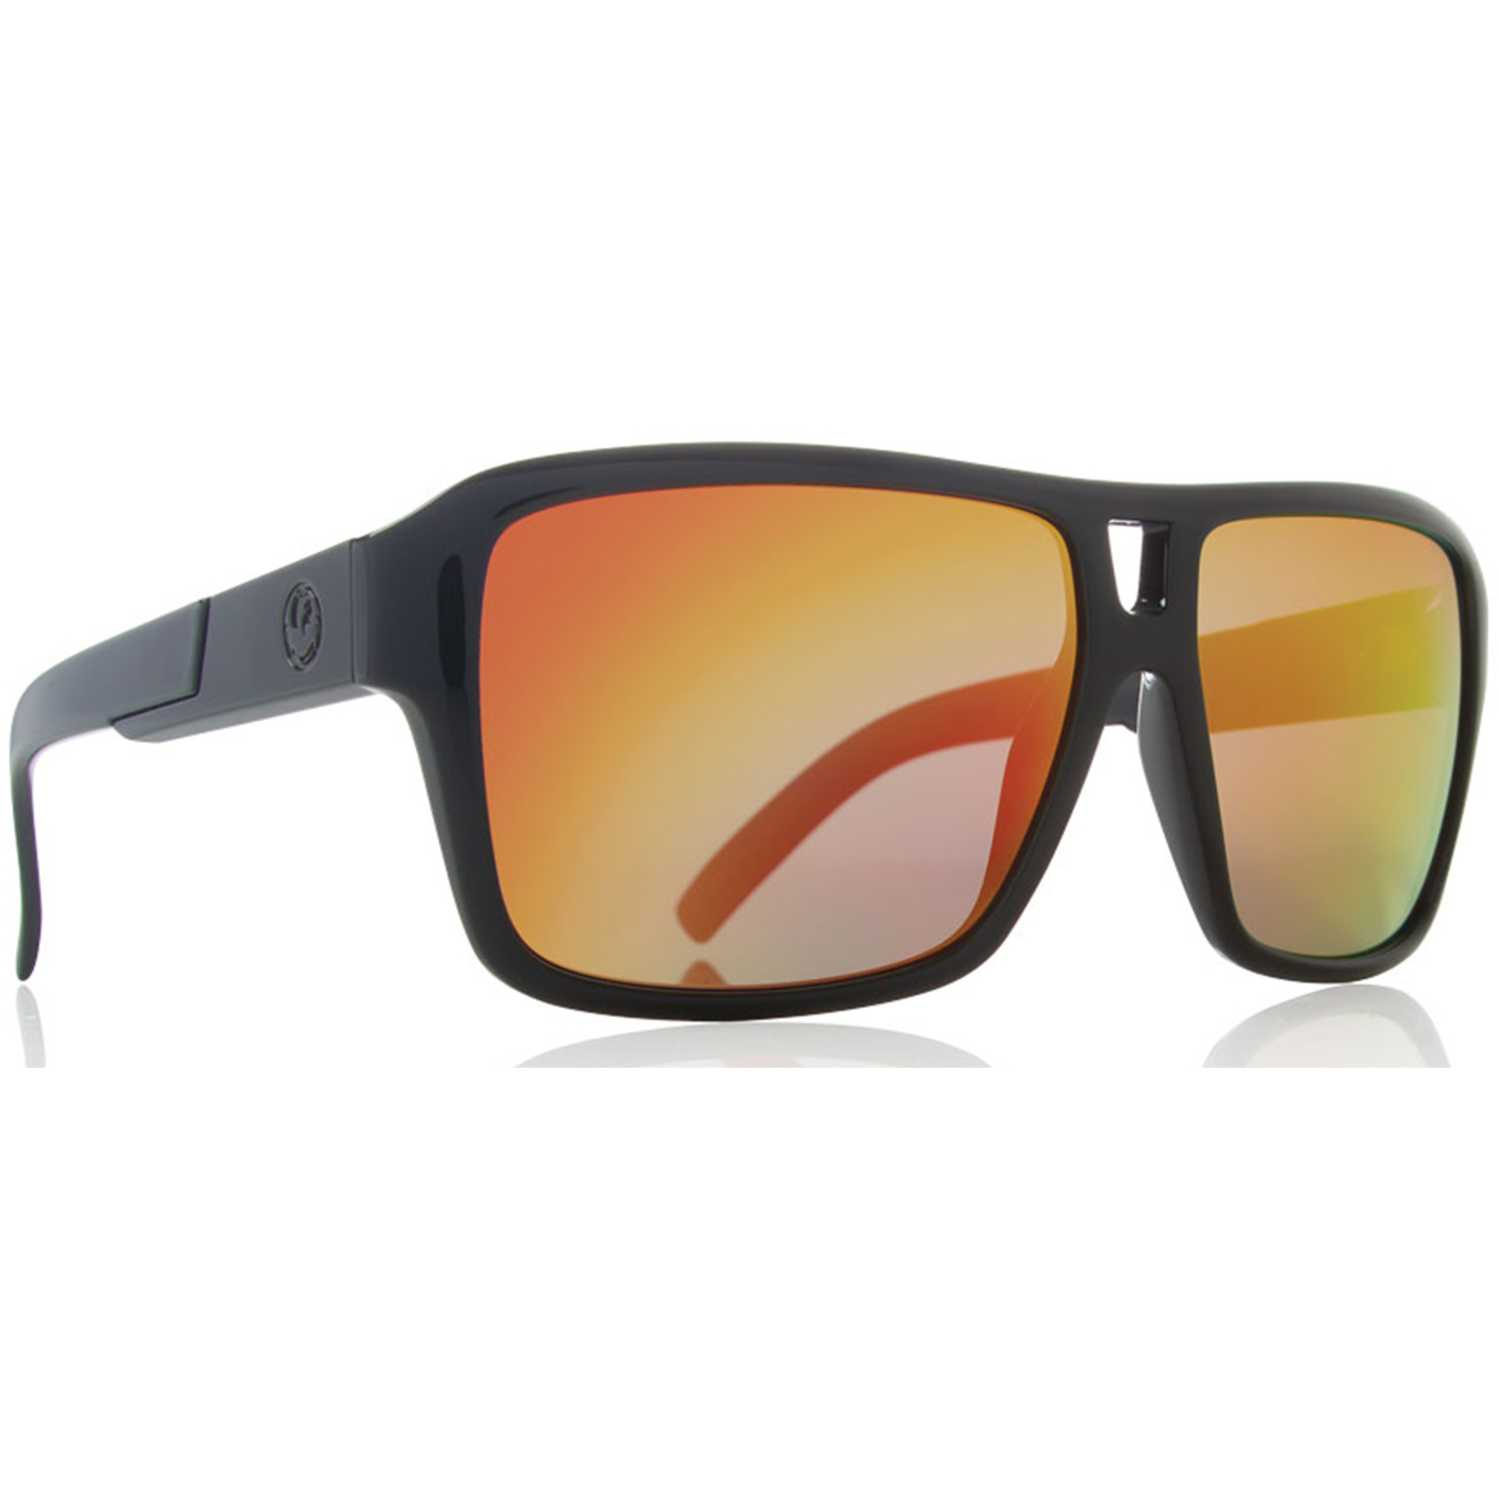 Dragon the jam jet Negro / naranja Lentes de Sol